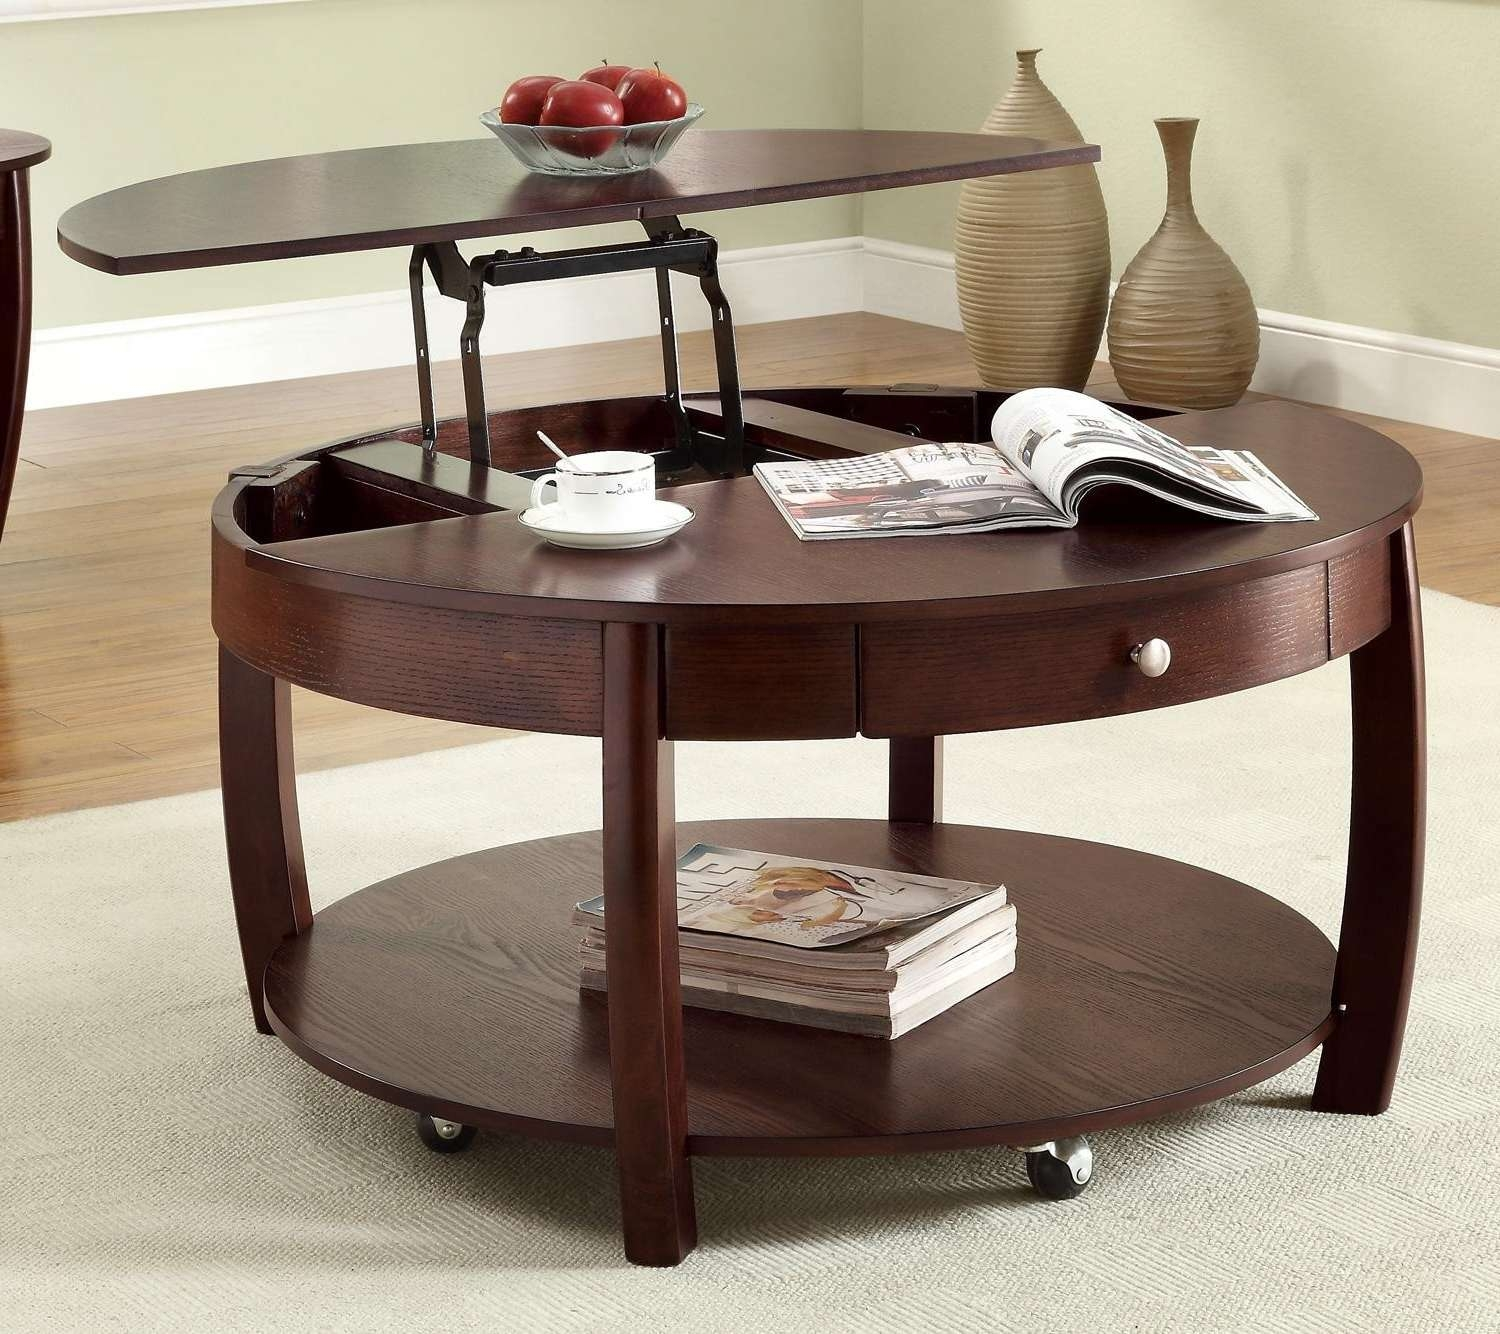 Most Recent Swing Up Coffee Tables In Coffee Table Lift Top Coffee Table Ikea Lift Off Coffee Table Pop (View 4 of 20)